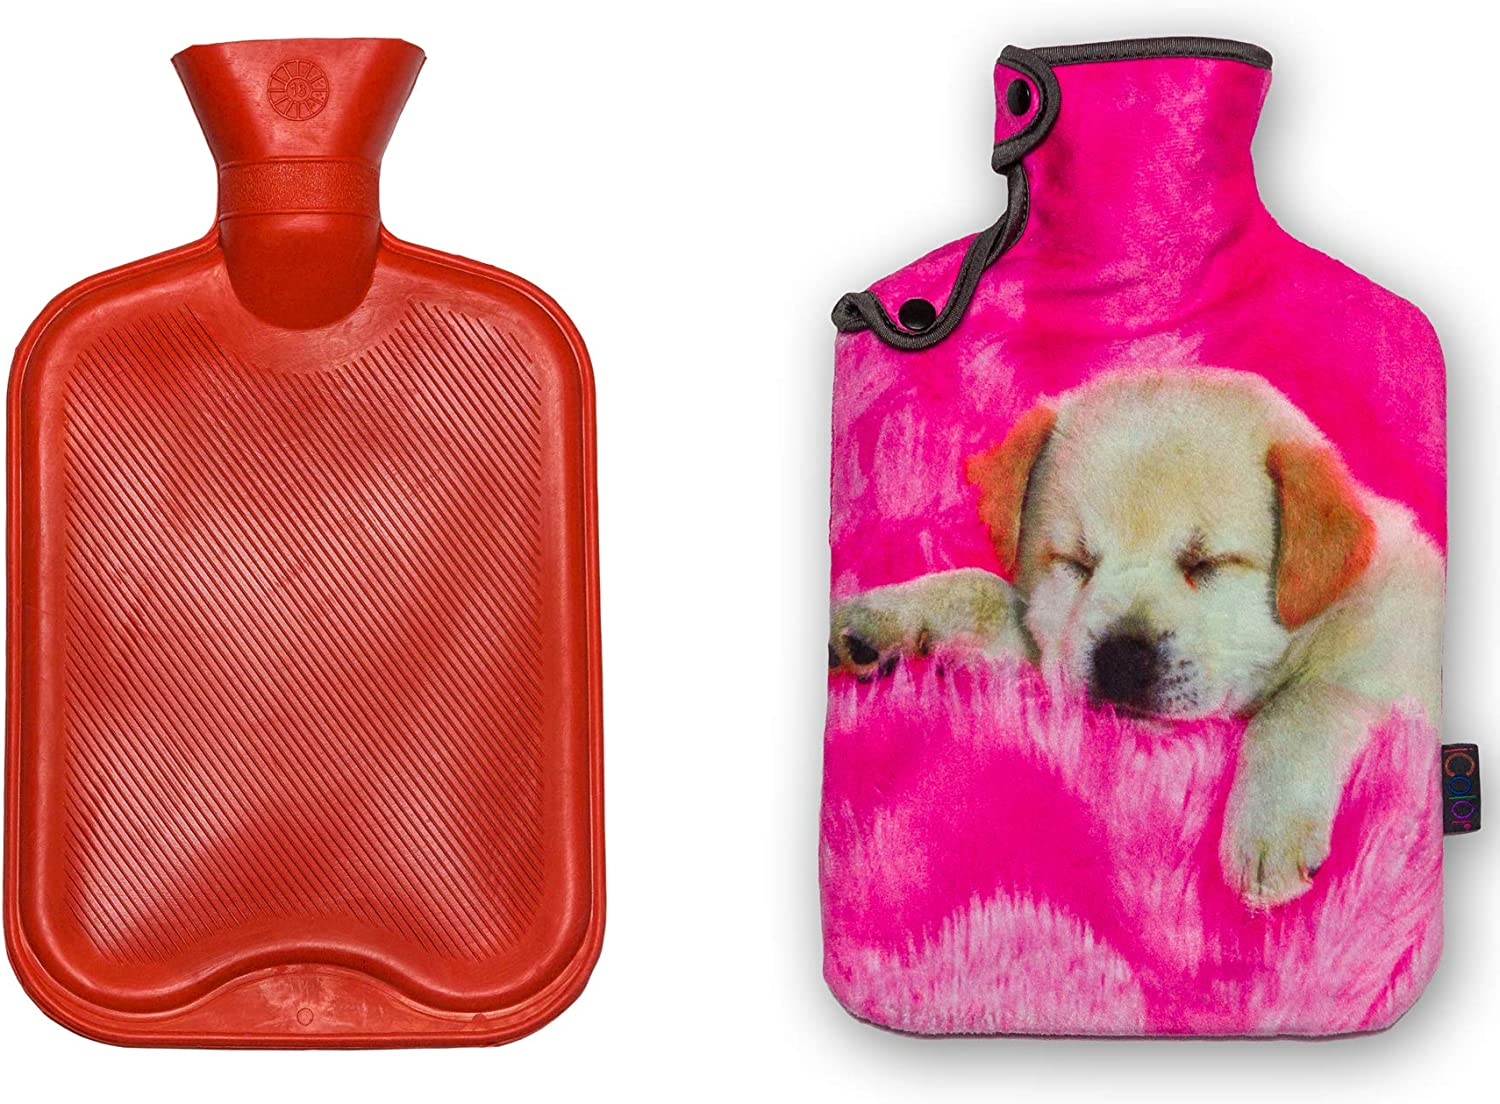 iColor 2L Rubber Hot Water Bottle with Soft Warm Flannel Cover Classic 2000ml 68oz Hot or Cold Water Bag Set Fit Pain Relief Hot Pack Therapy Home Outdoor (Pink Dog)